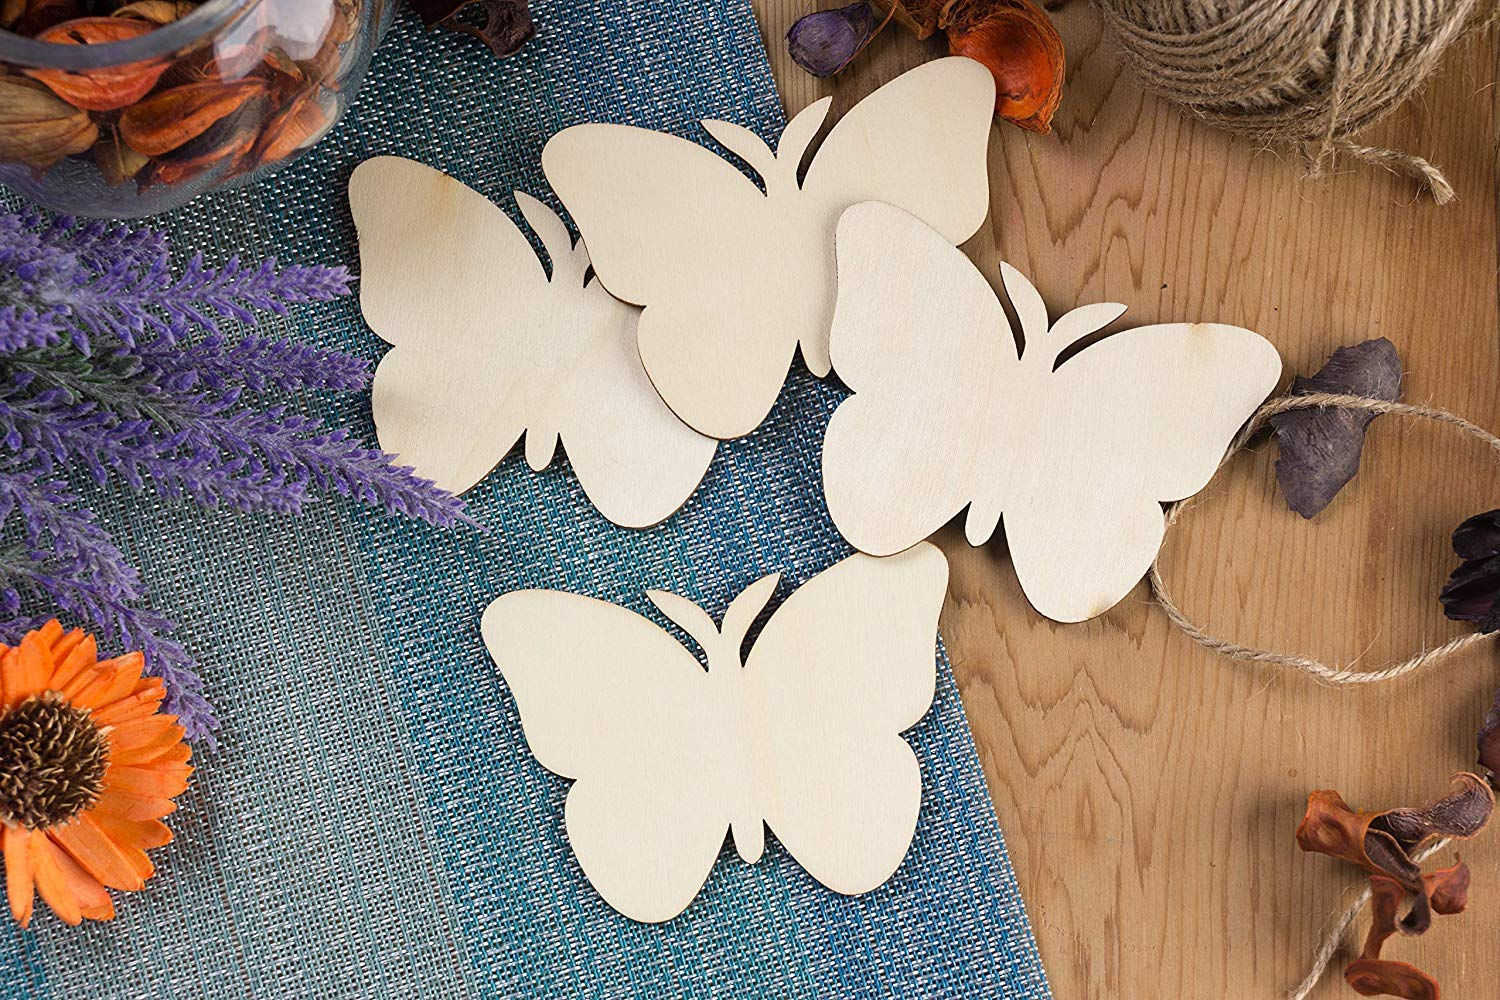 24-Pack Bear Shaped Wood Pieces for Wooden Craft DIY Projects Unfinished Wood Cutout Gift Tags 3.7 x 3.5 x 0.1 inches Home Decoration